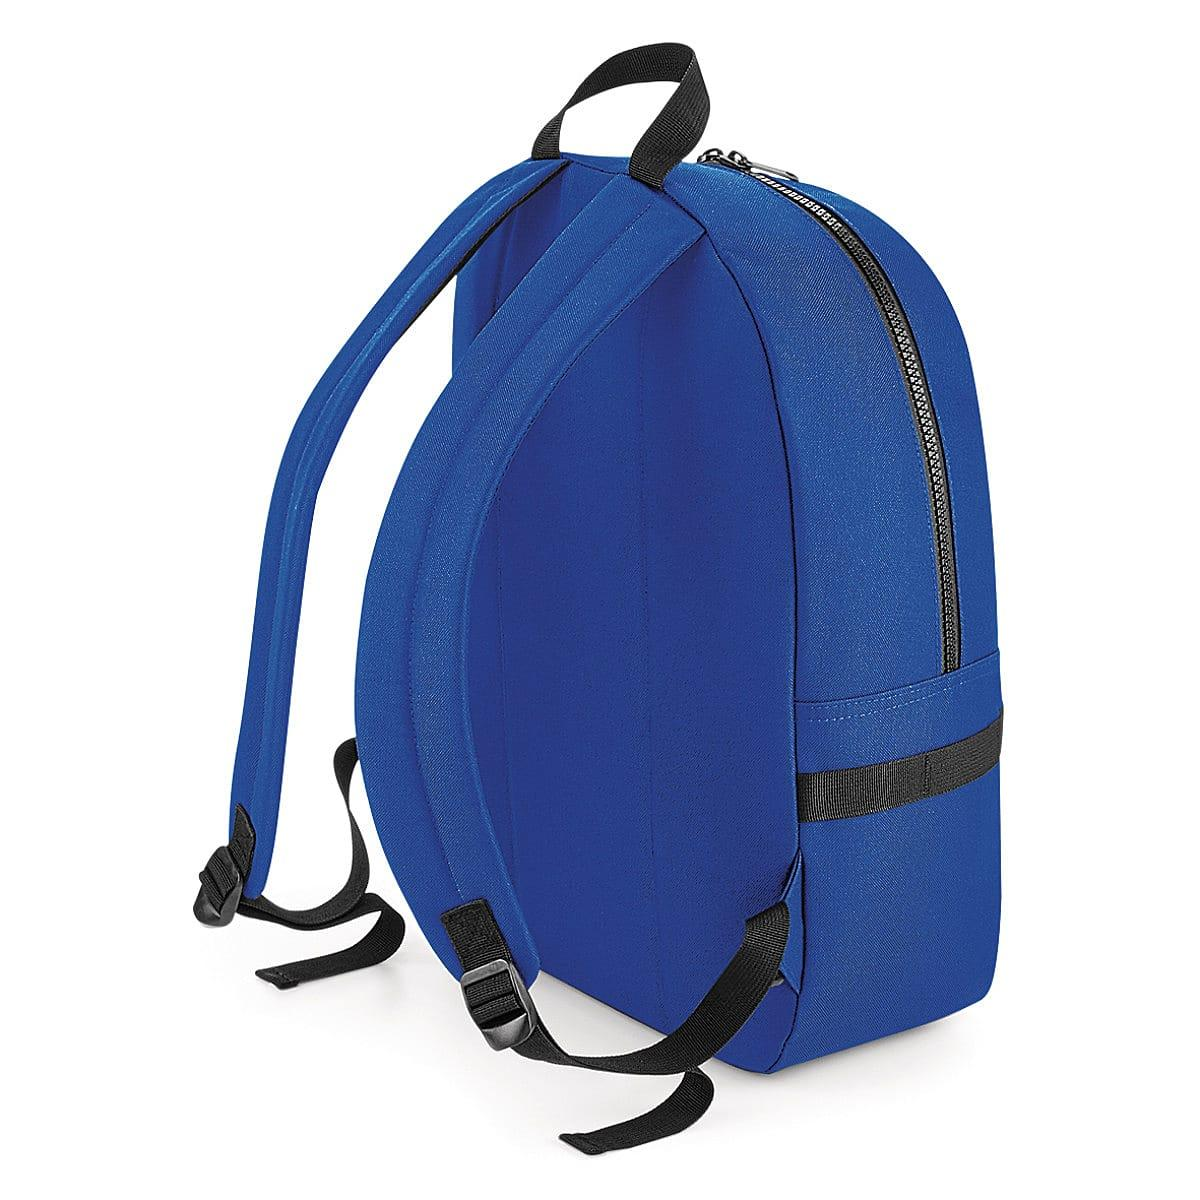 Bagbase Modulr 20 Litre Backpack in Bright Royal (Product Code: BG240)